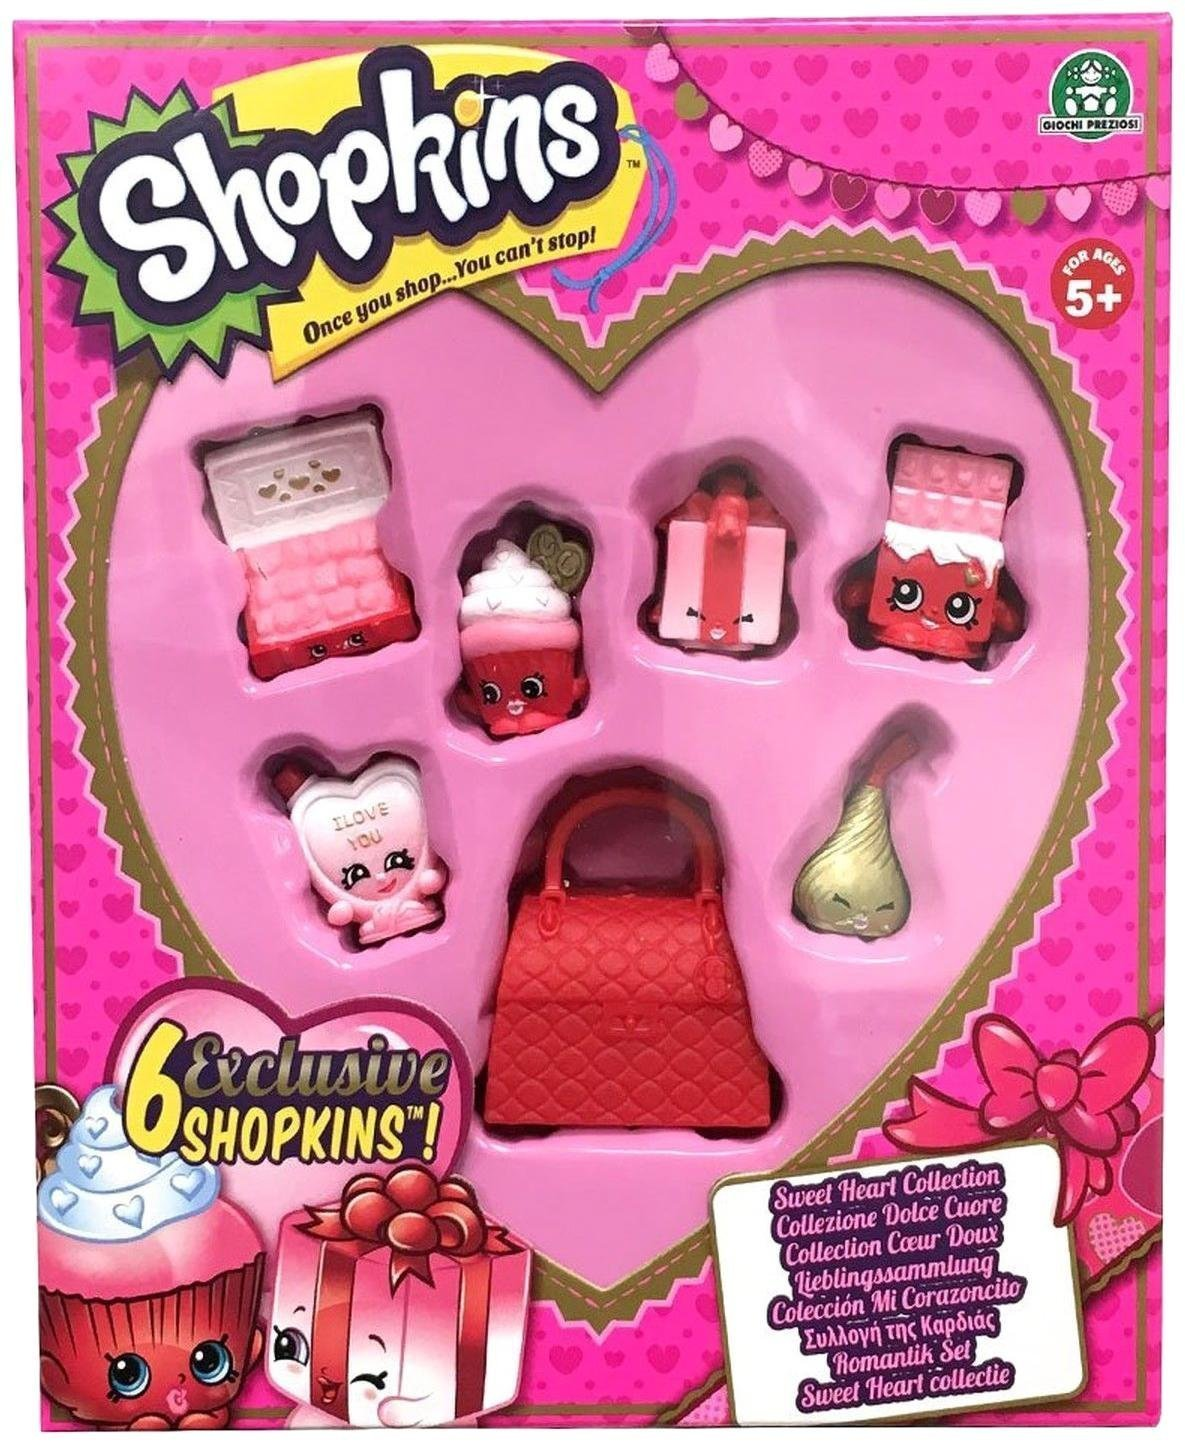 81uuXzxkJ0L. SL1444  - Shopkins Sweet Heart Collection Toy